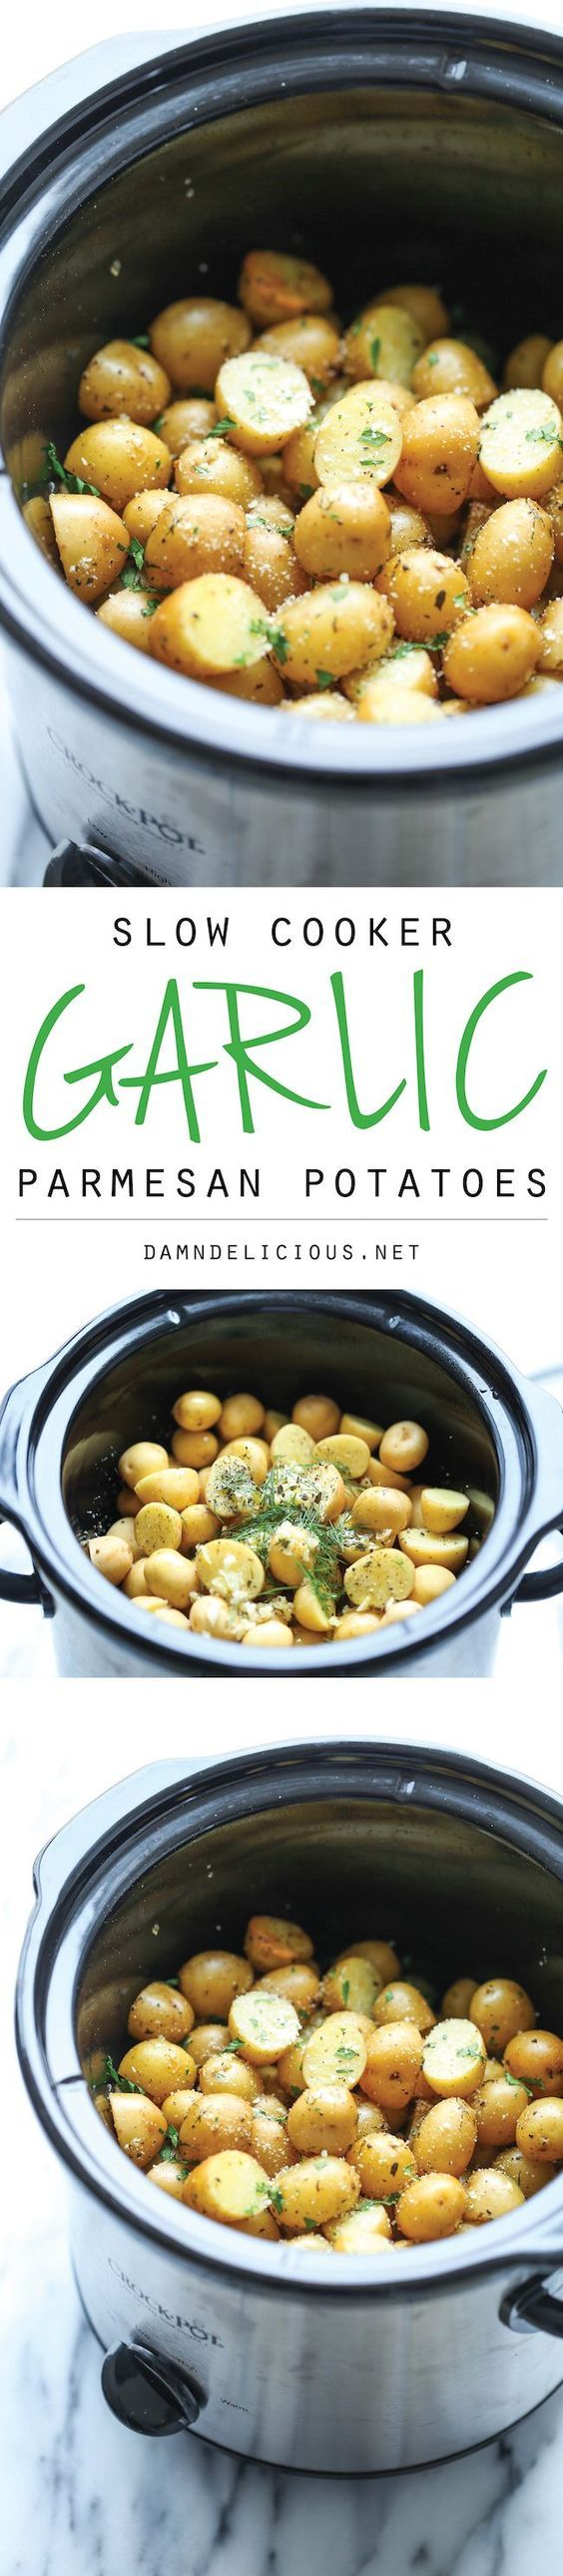 Slow Cooker Garlic Parmesan Potatoes Crisptender potatoes with garlicky parmesan goodness. It's the easiest side dish you will ever make in the crockpot!